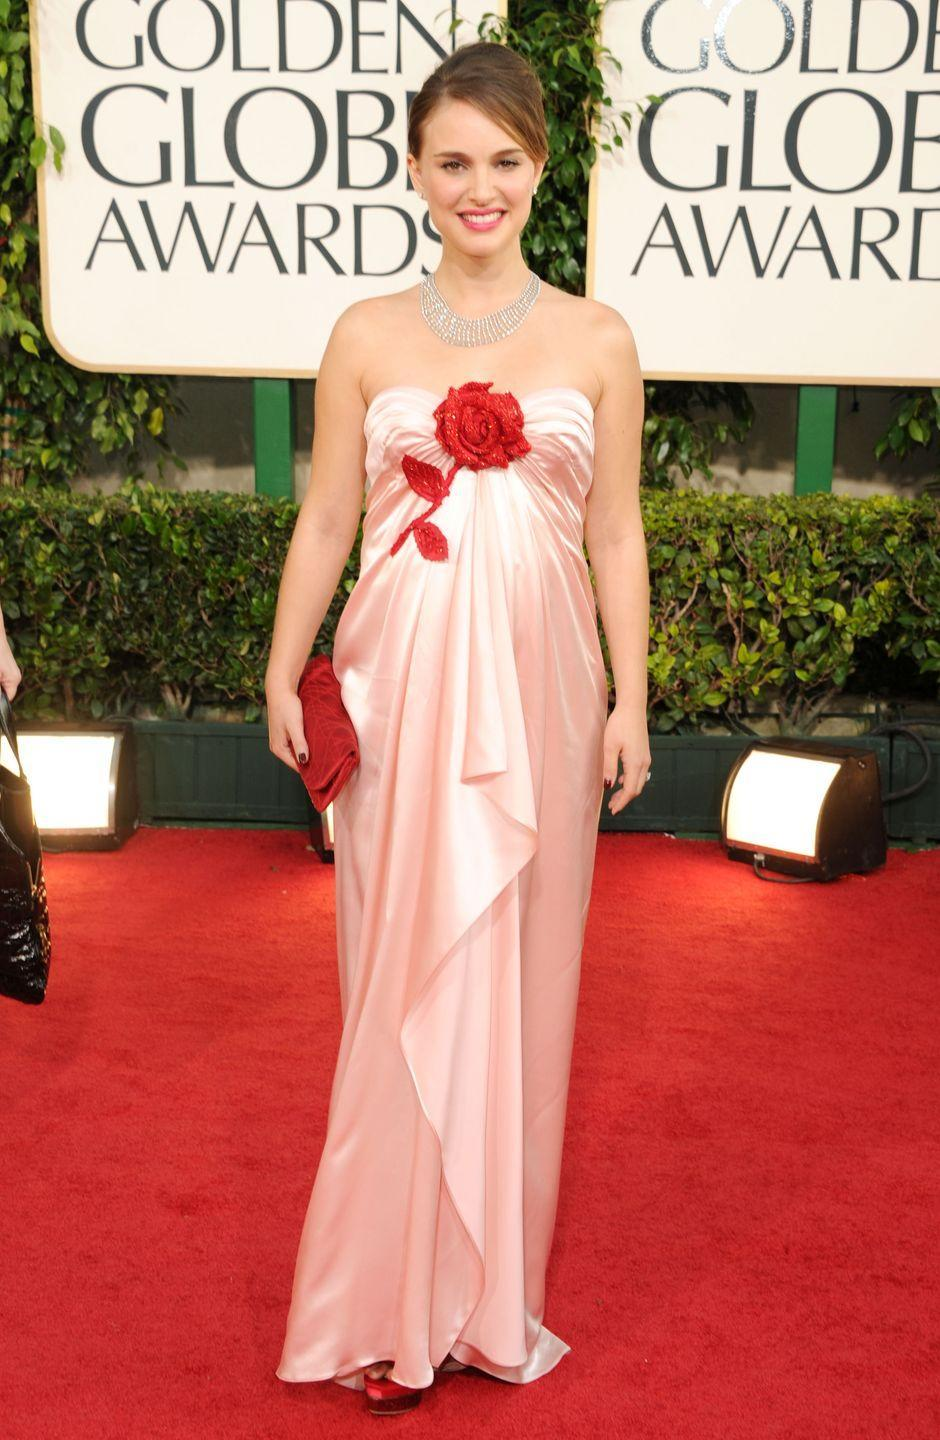 <p>Entering into the second decade of the 21st century, maternity style took a turn for the romantic. Long, flowing, feminine gowns were a favorite amongst pregnant A-listers, like Natalie Portman.</p>